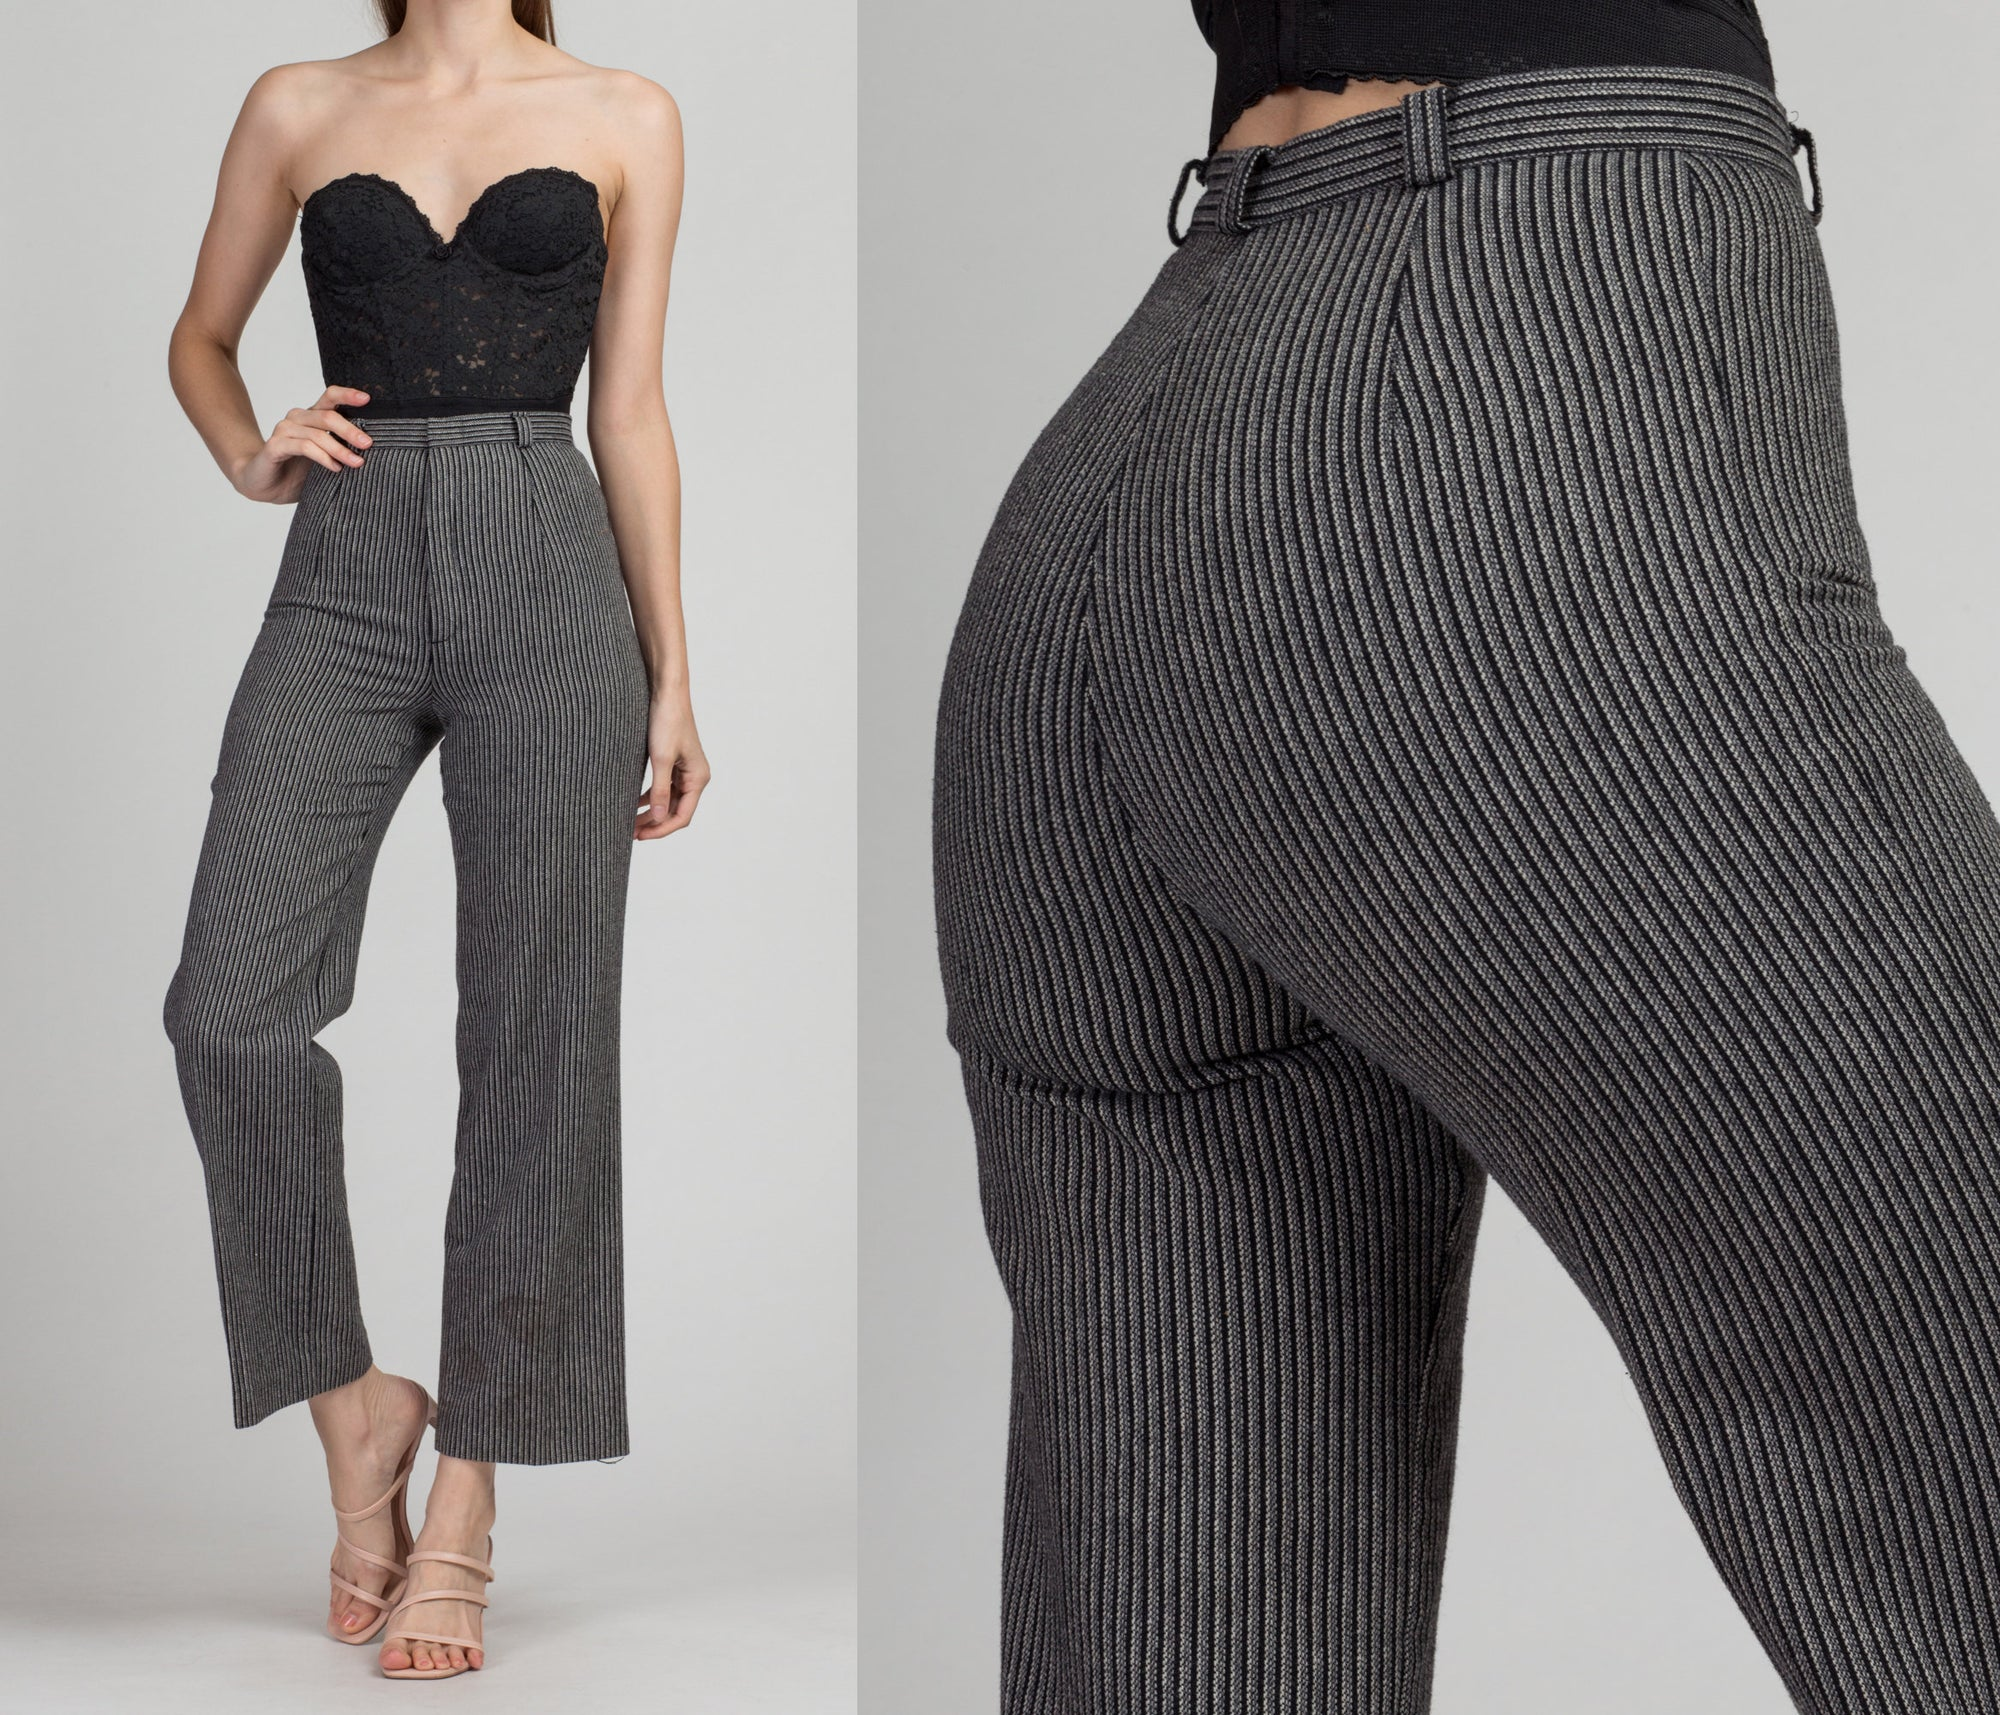 70s Black & Gray Striped High Waist Pants - Extra Small, 24"